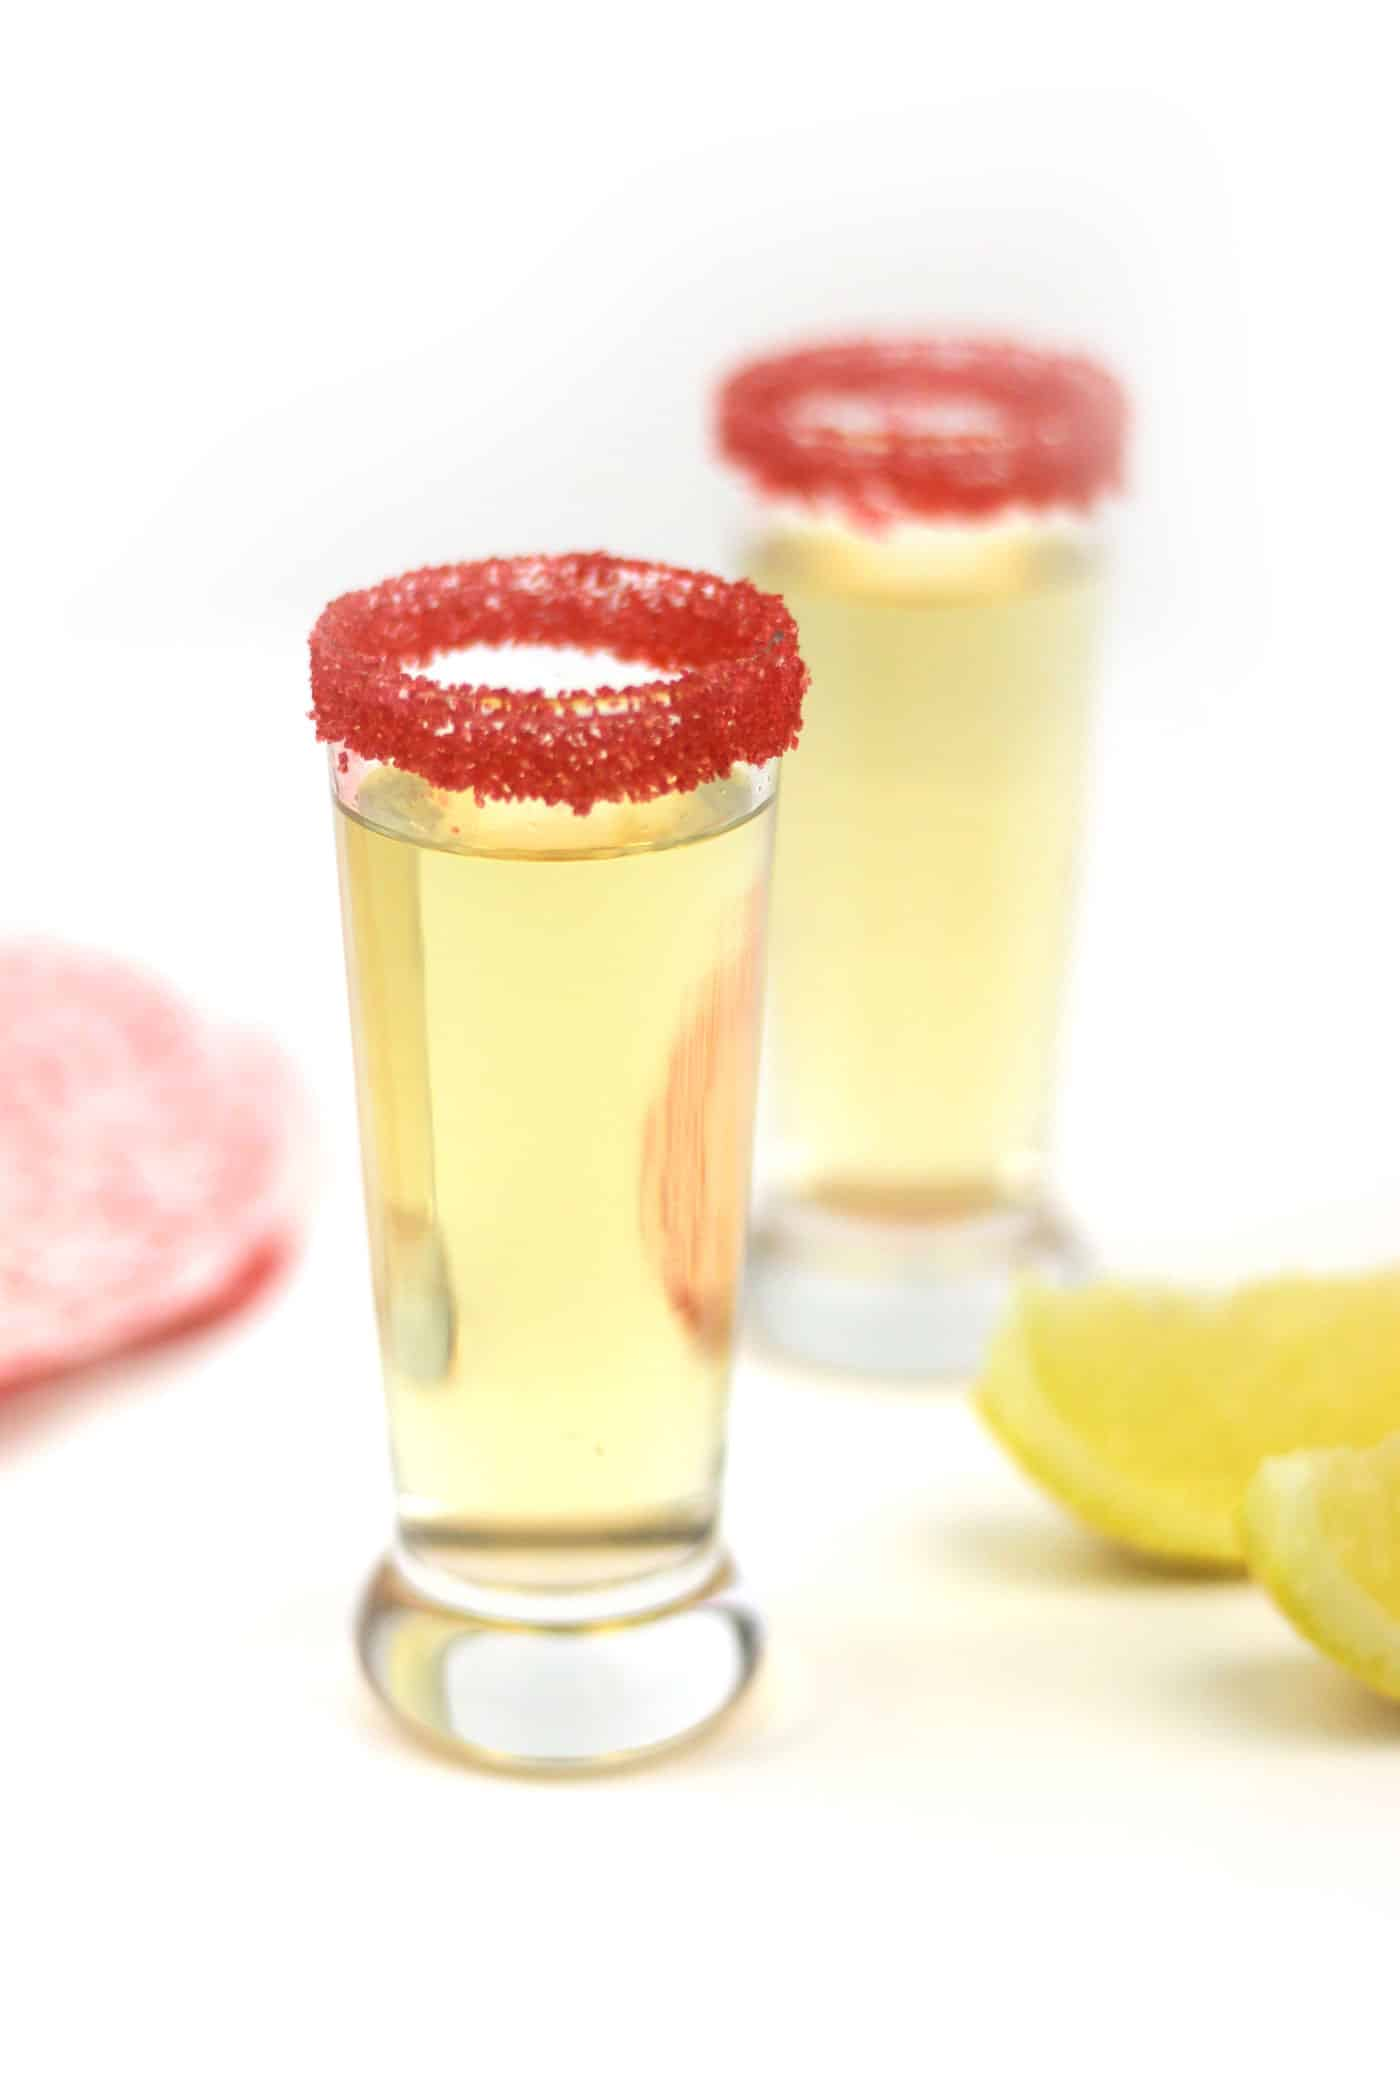 Chocolate Cake Shooters seriously taste just like chocolate cake! Hazelnut liqueur, vanilla vodka and lemon juice come together for a surprising flavor explosion. The perfect party treat for Valentine's Day, birthdays and more! (via feastandwest.com)